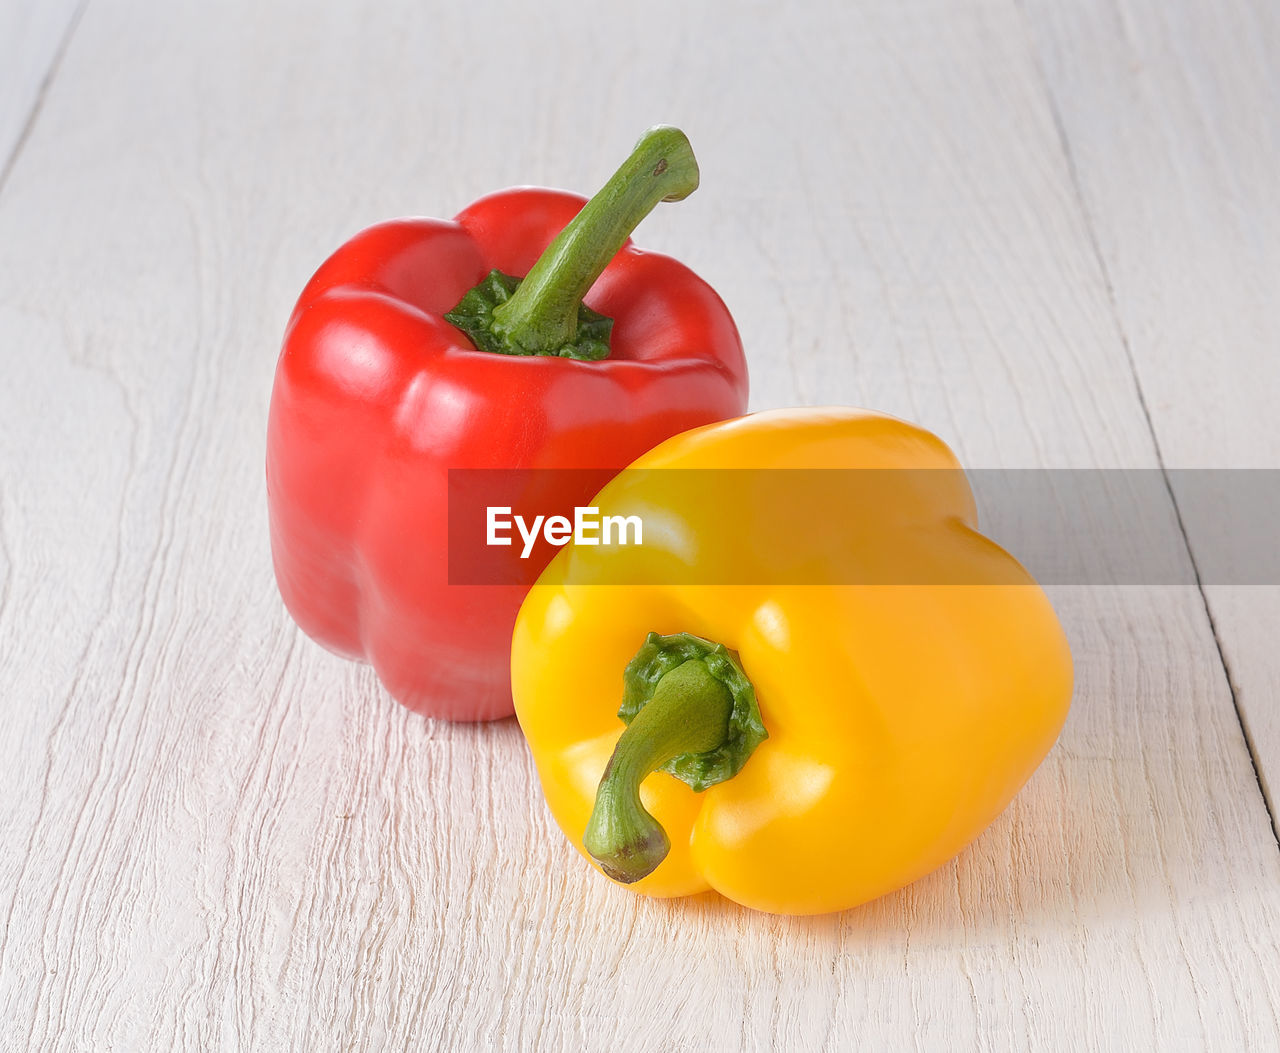 pepper, vegetable, bell pepper, yellow, red, yellow bell pepper, still life, freshness, wellbeing, food, table, red bell pepper, indoors, food and drink, close-up, healthy eating, raw food, no people, wood - material, high angle view, paprika